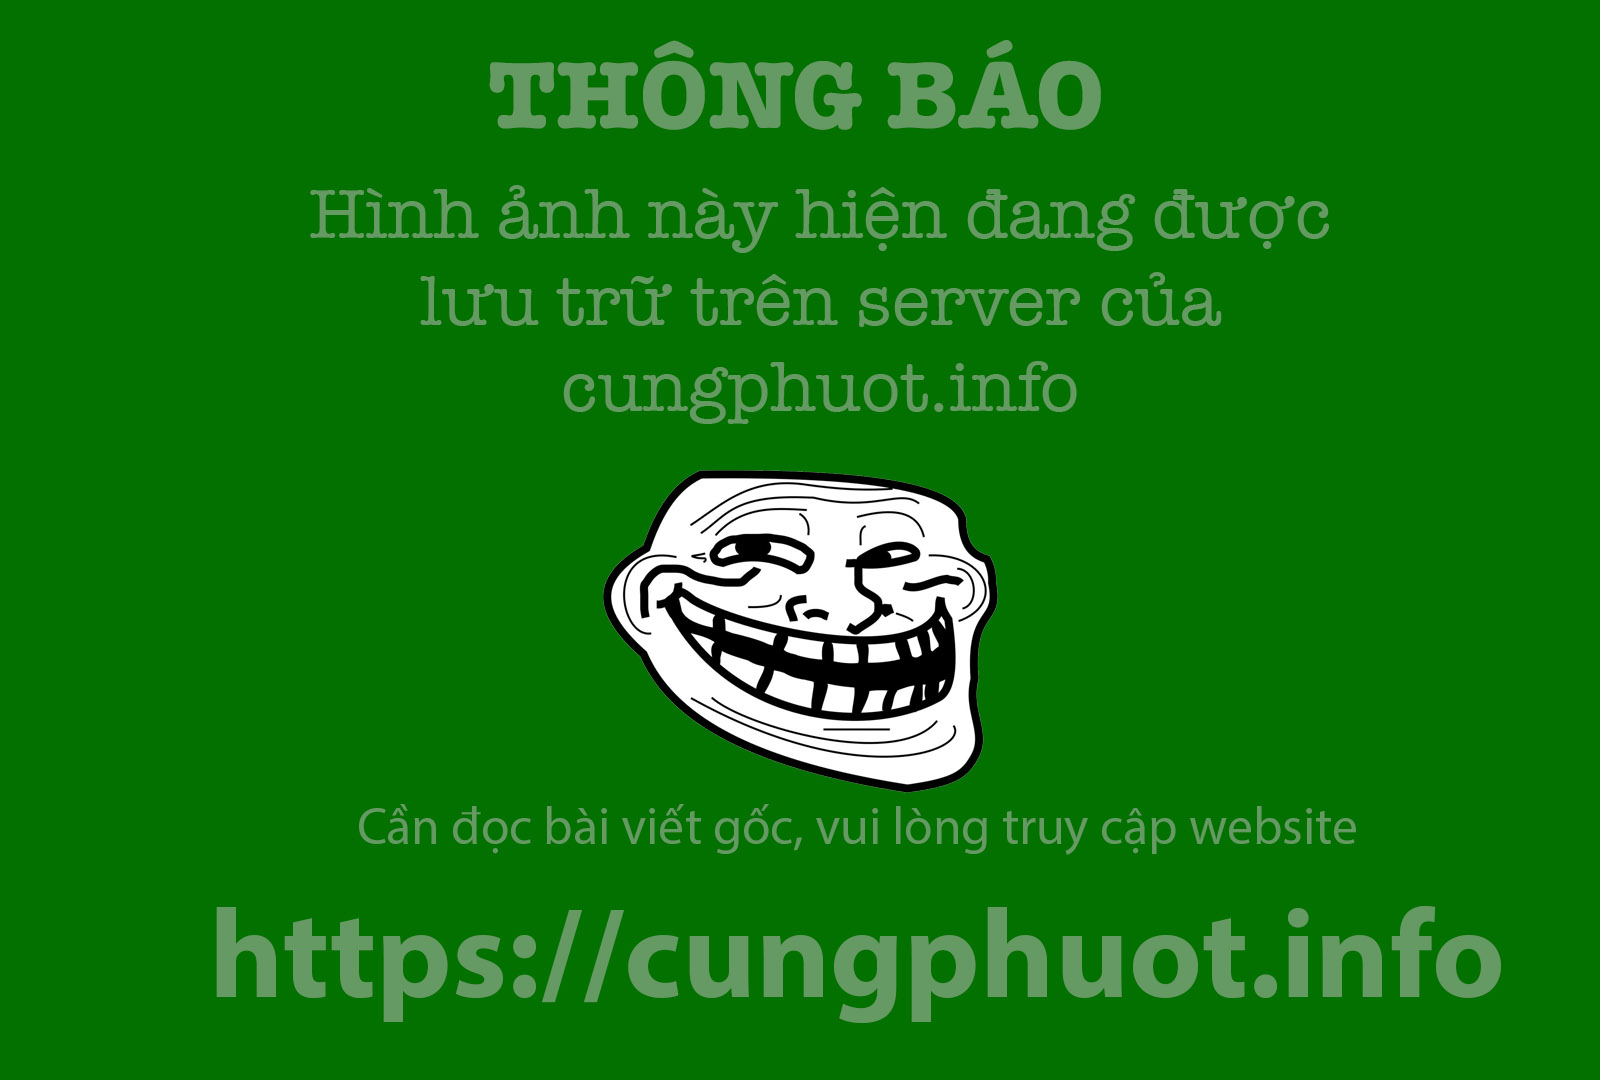 May von nui tren cong troi Muong Long hinh anh 11